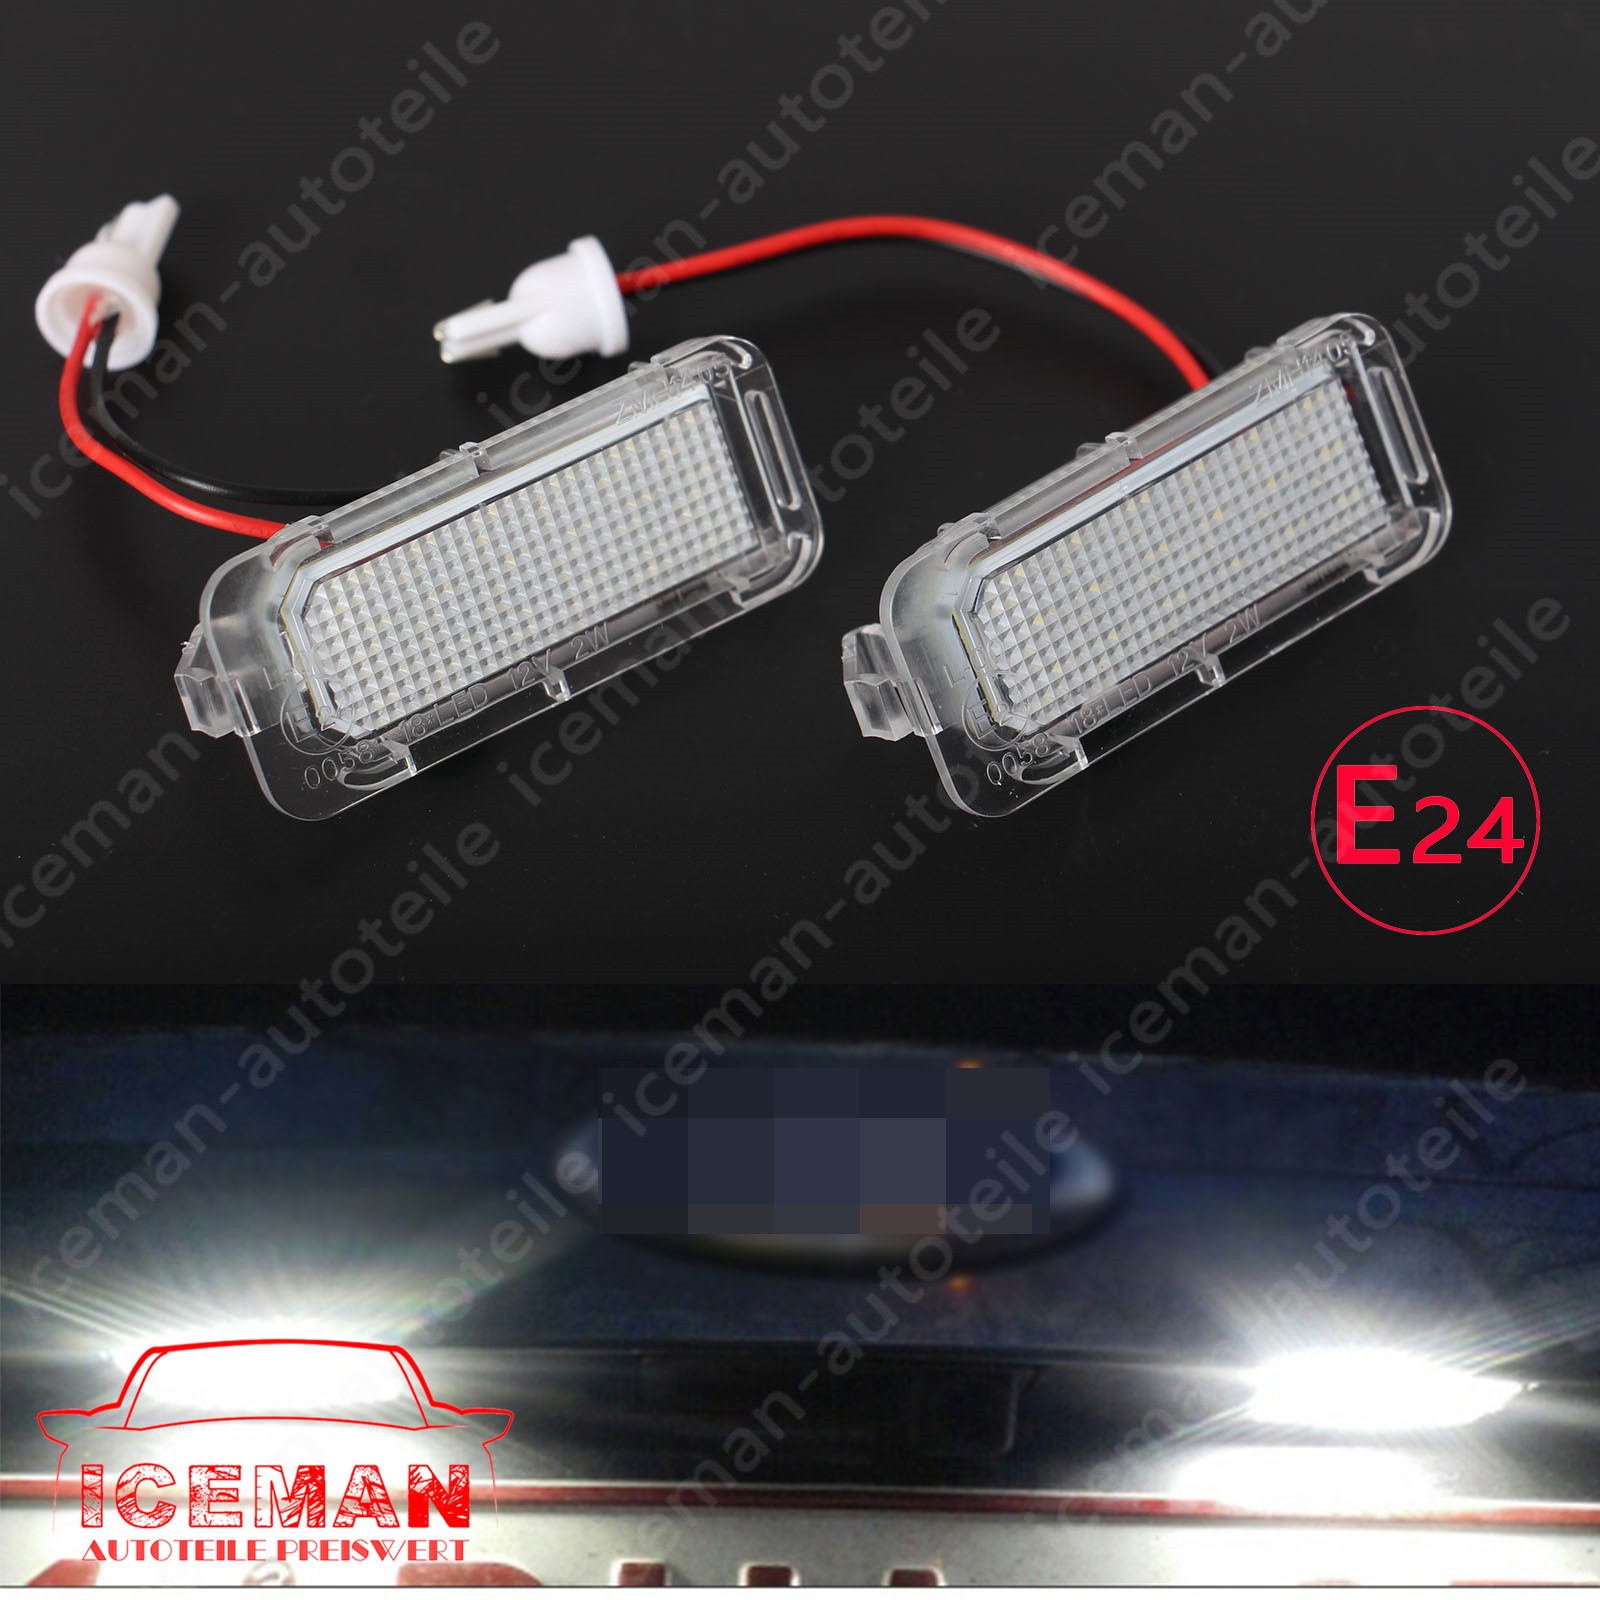 2x TOP LED Kennzeichenbeleuchtung Ford Transit Connect KS1